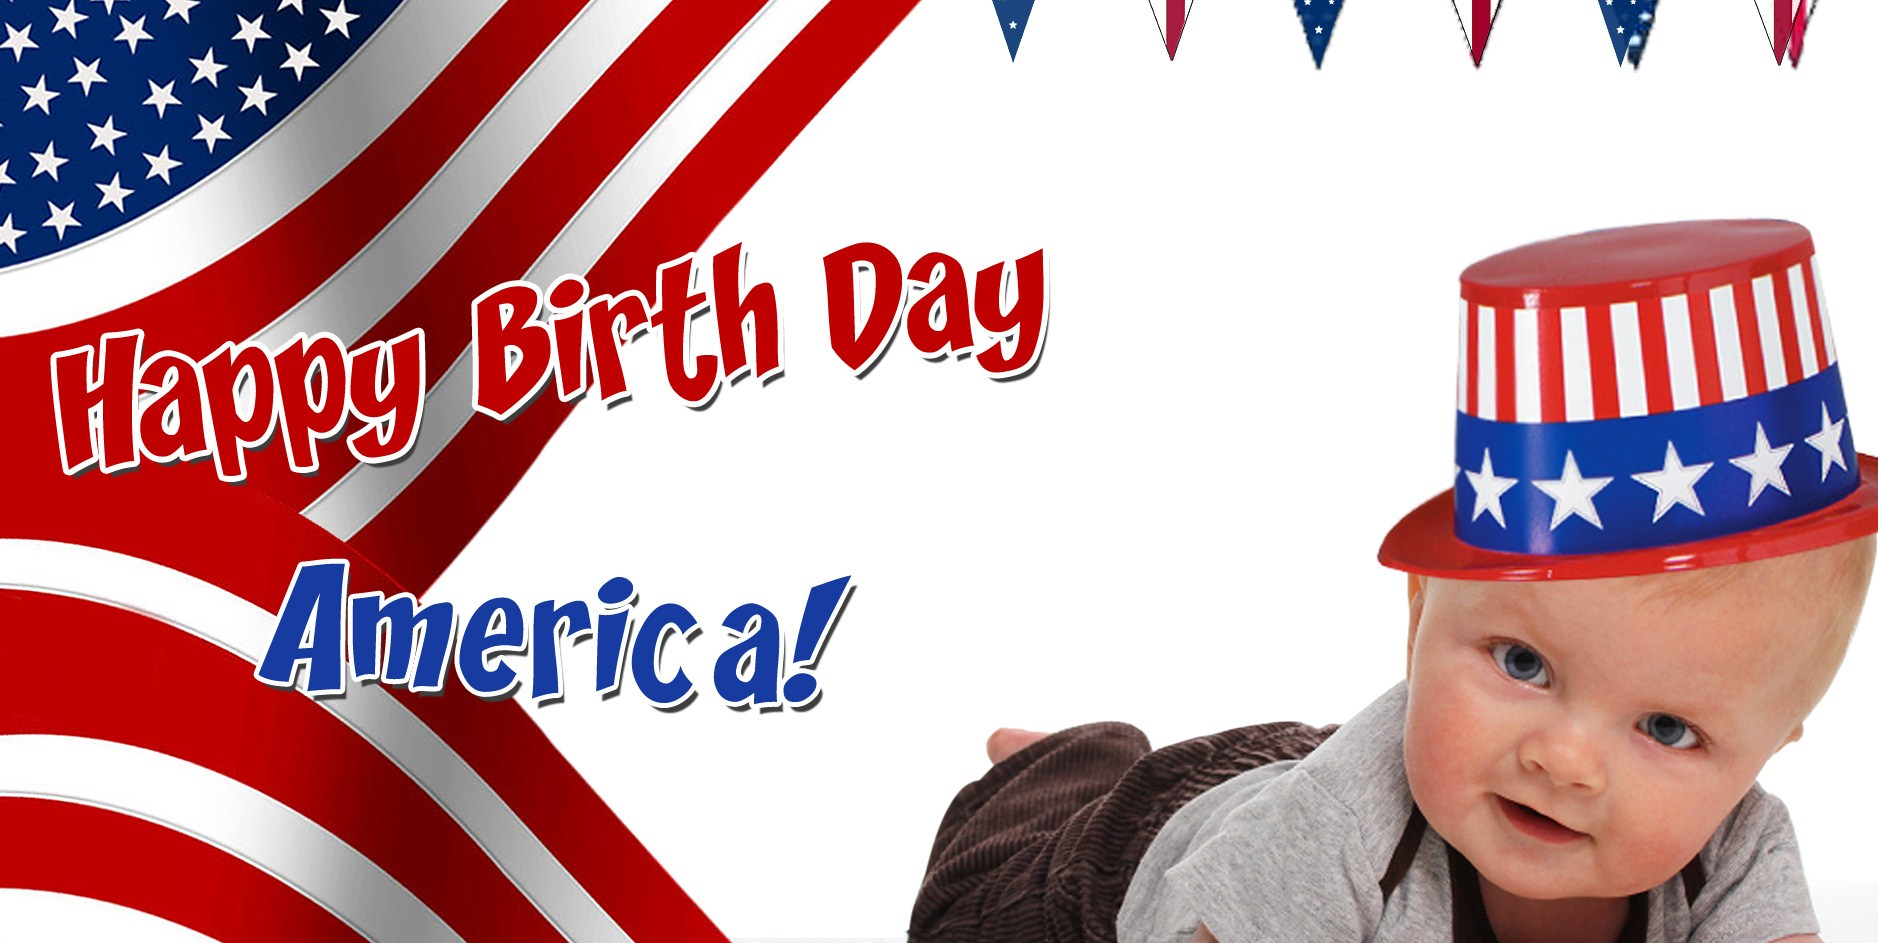 Happy Birthday America Beautiful Wishes Greetings